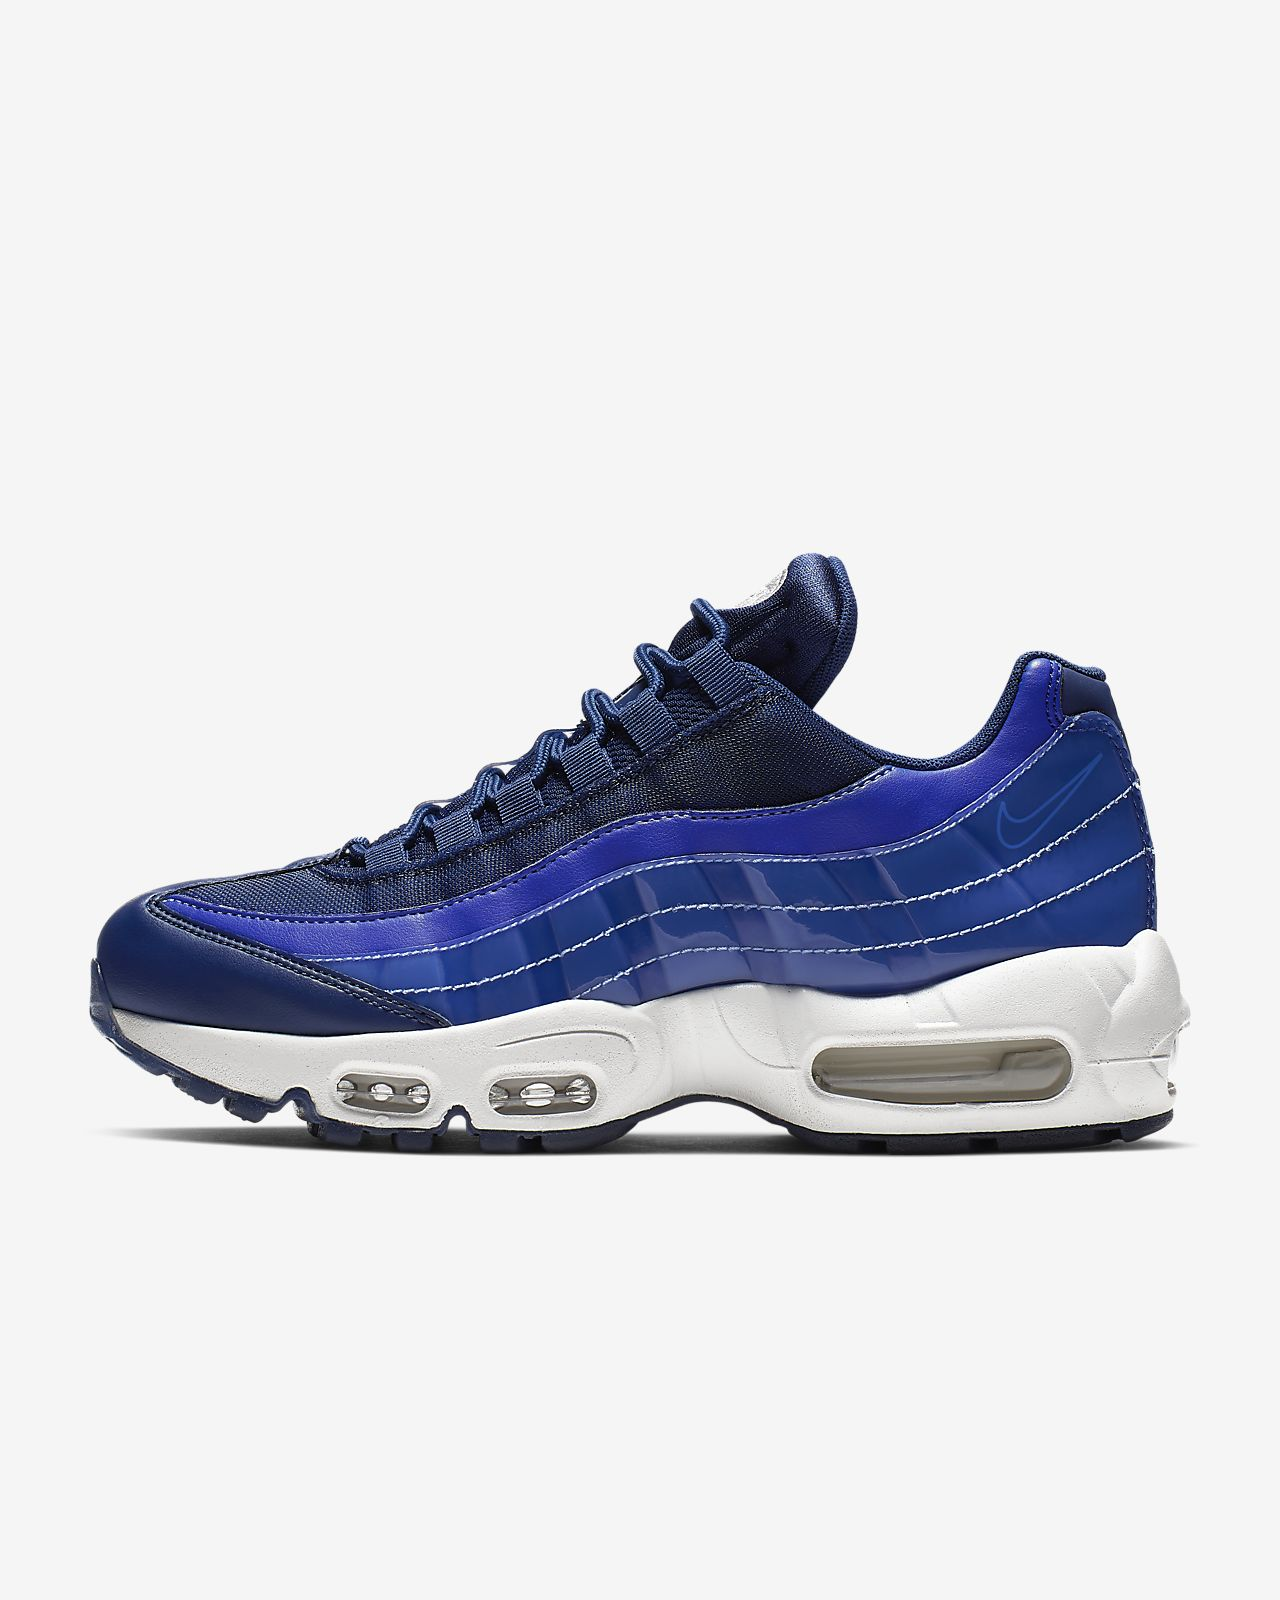 newest 1cd17 5a194 Women s Shoe. Nike Air Max 95 SE